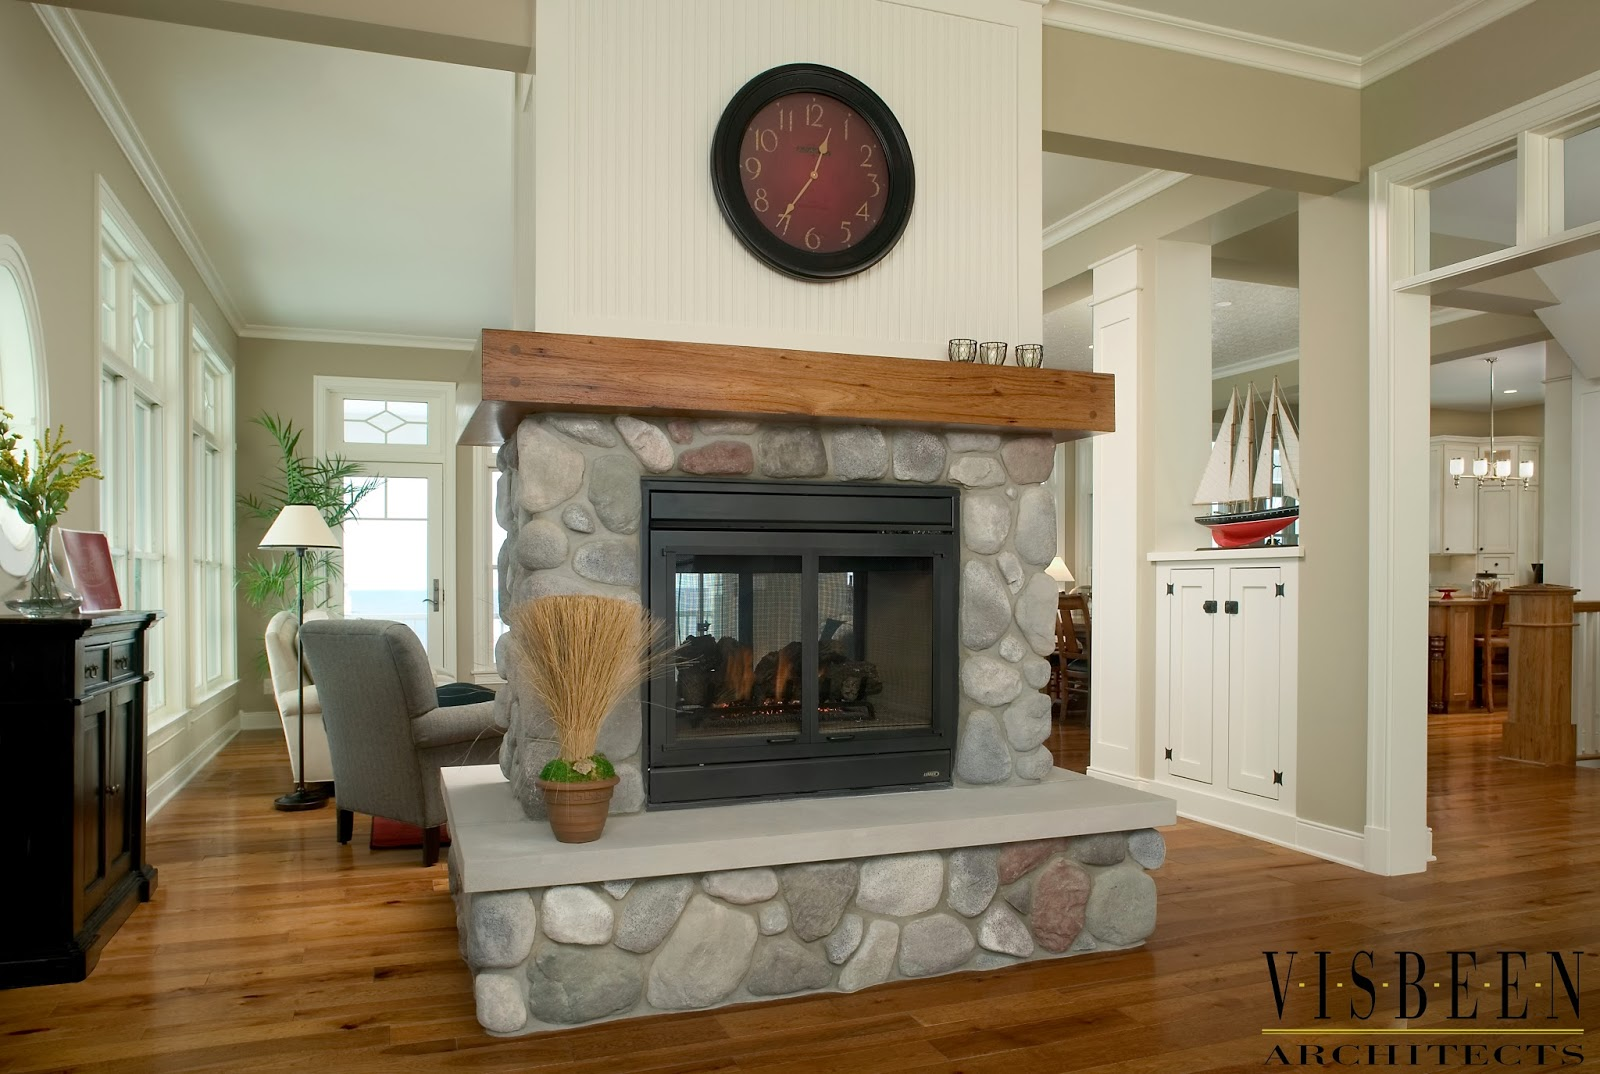 10 Spectacular Fireplace In Center Of Room - House Plans ...